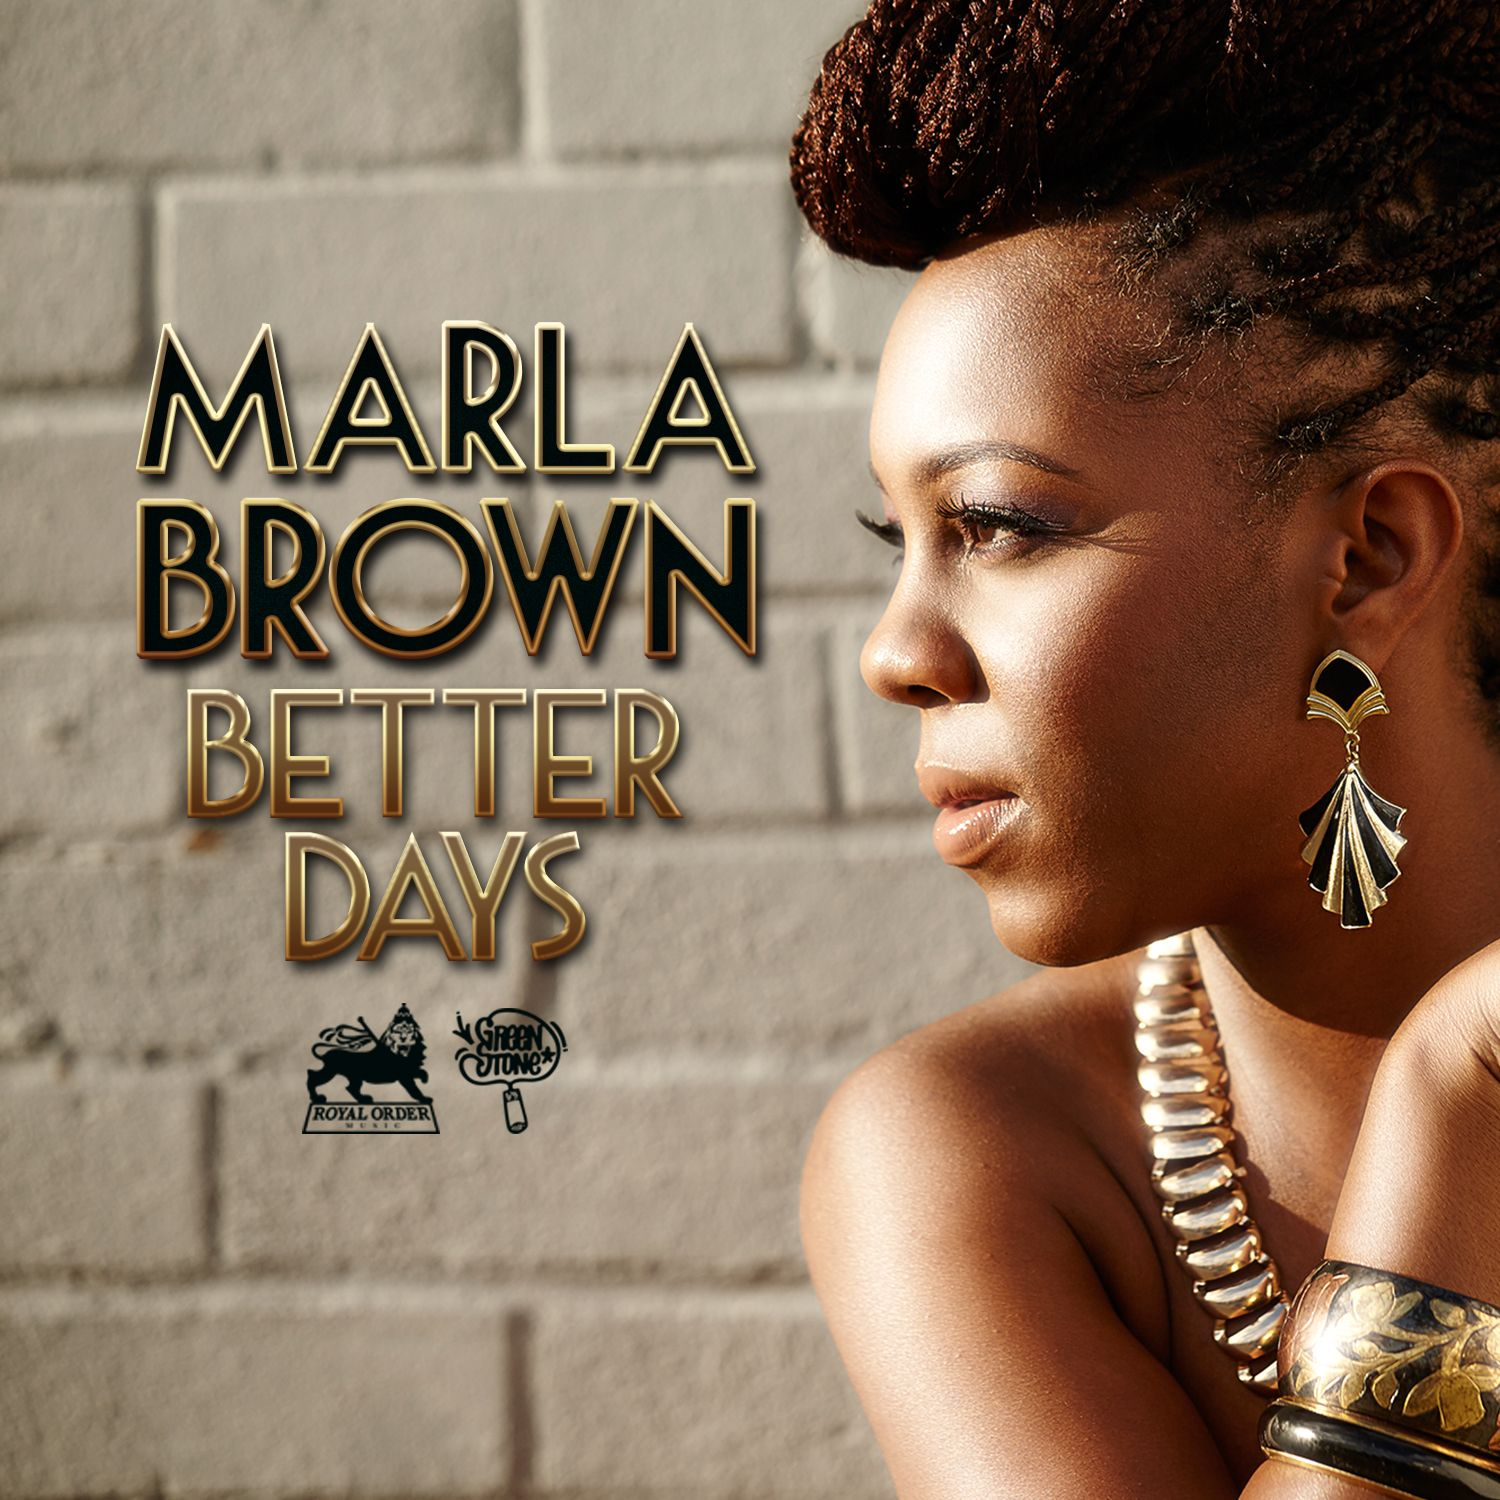 """Download Better Now By Post Malone: MARLA BROWN - """"BETTER DAYS @itsMarlaB"""" - Listen"""